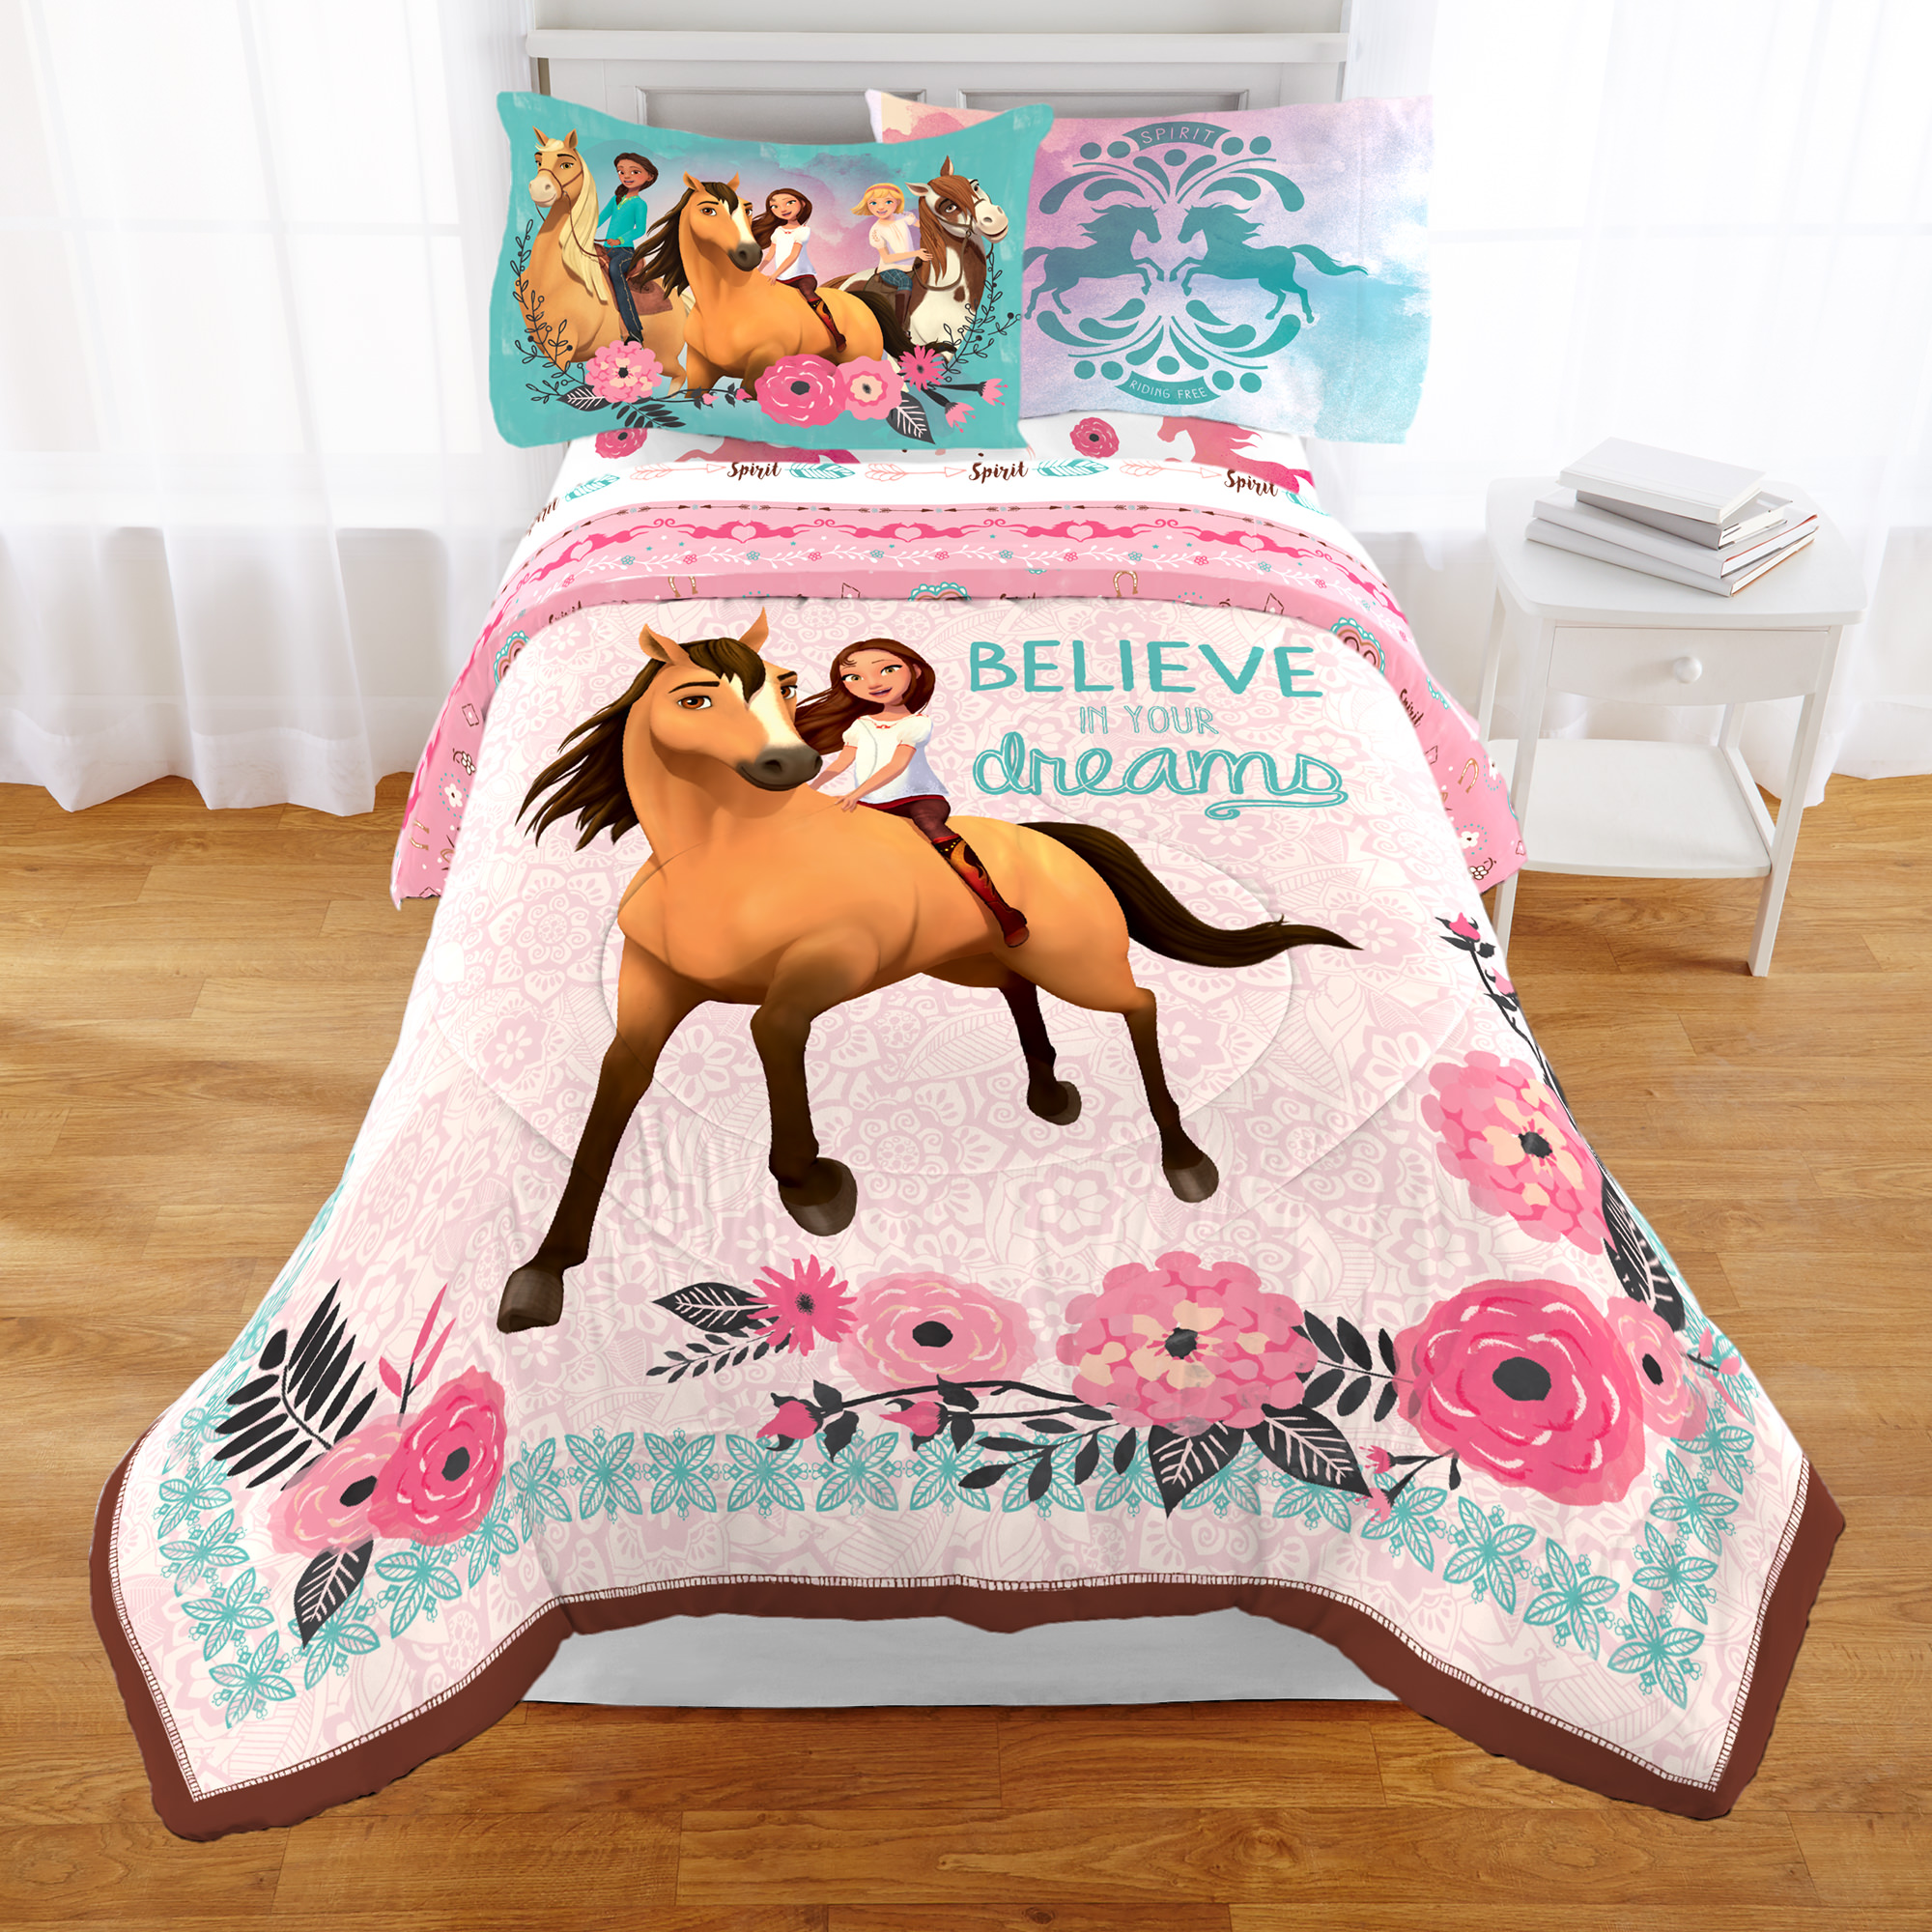 Dream Works Spirit 'Giddy Up' Kids Bedding Comforter, Twin